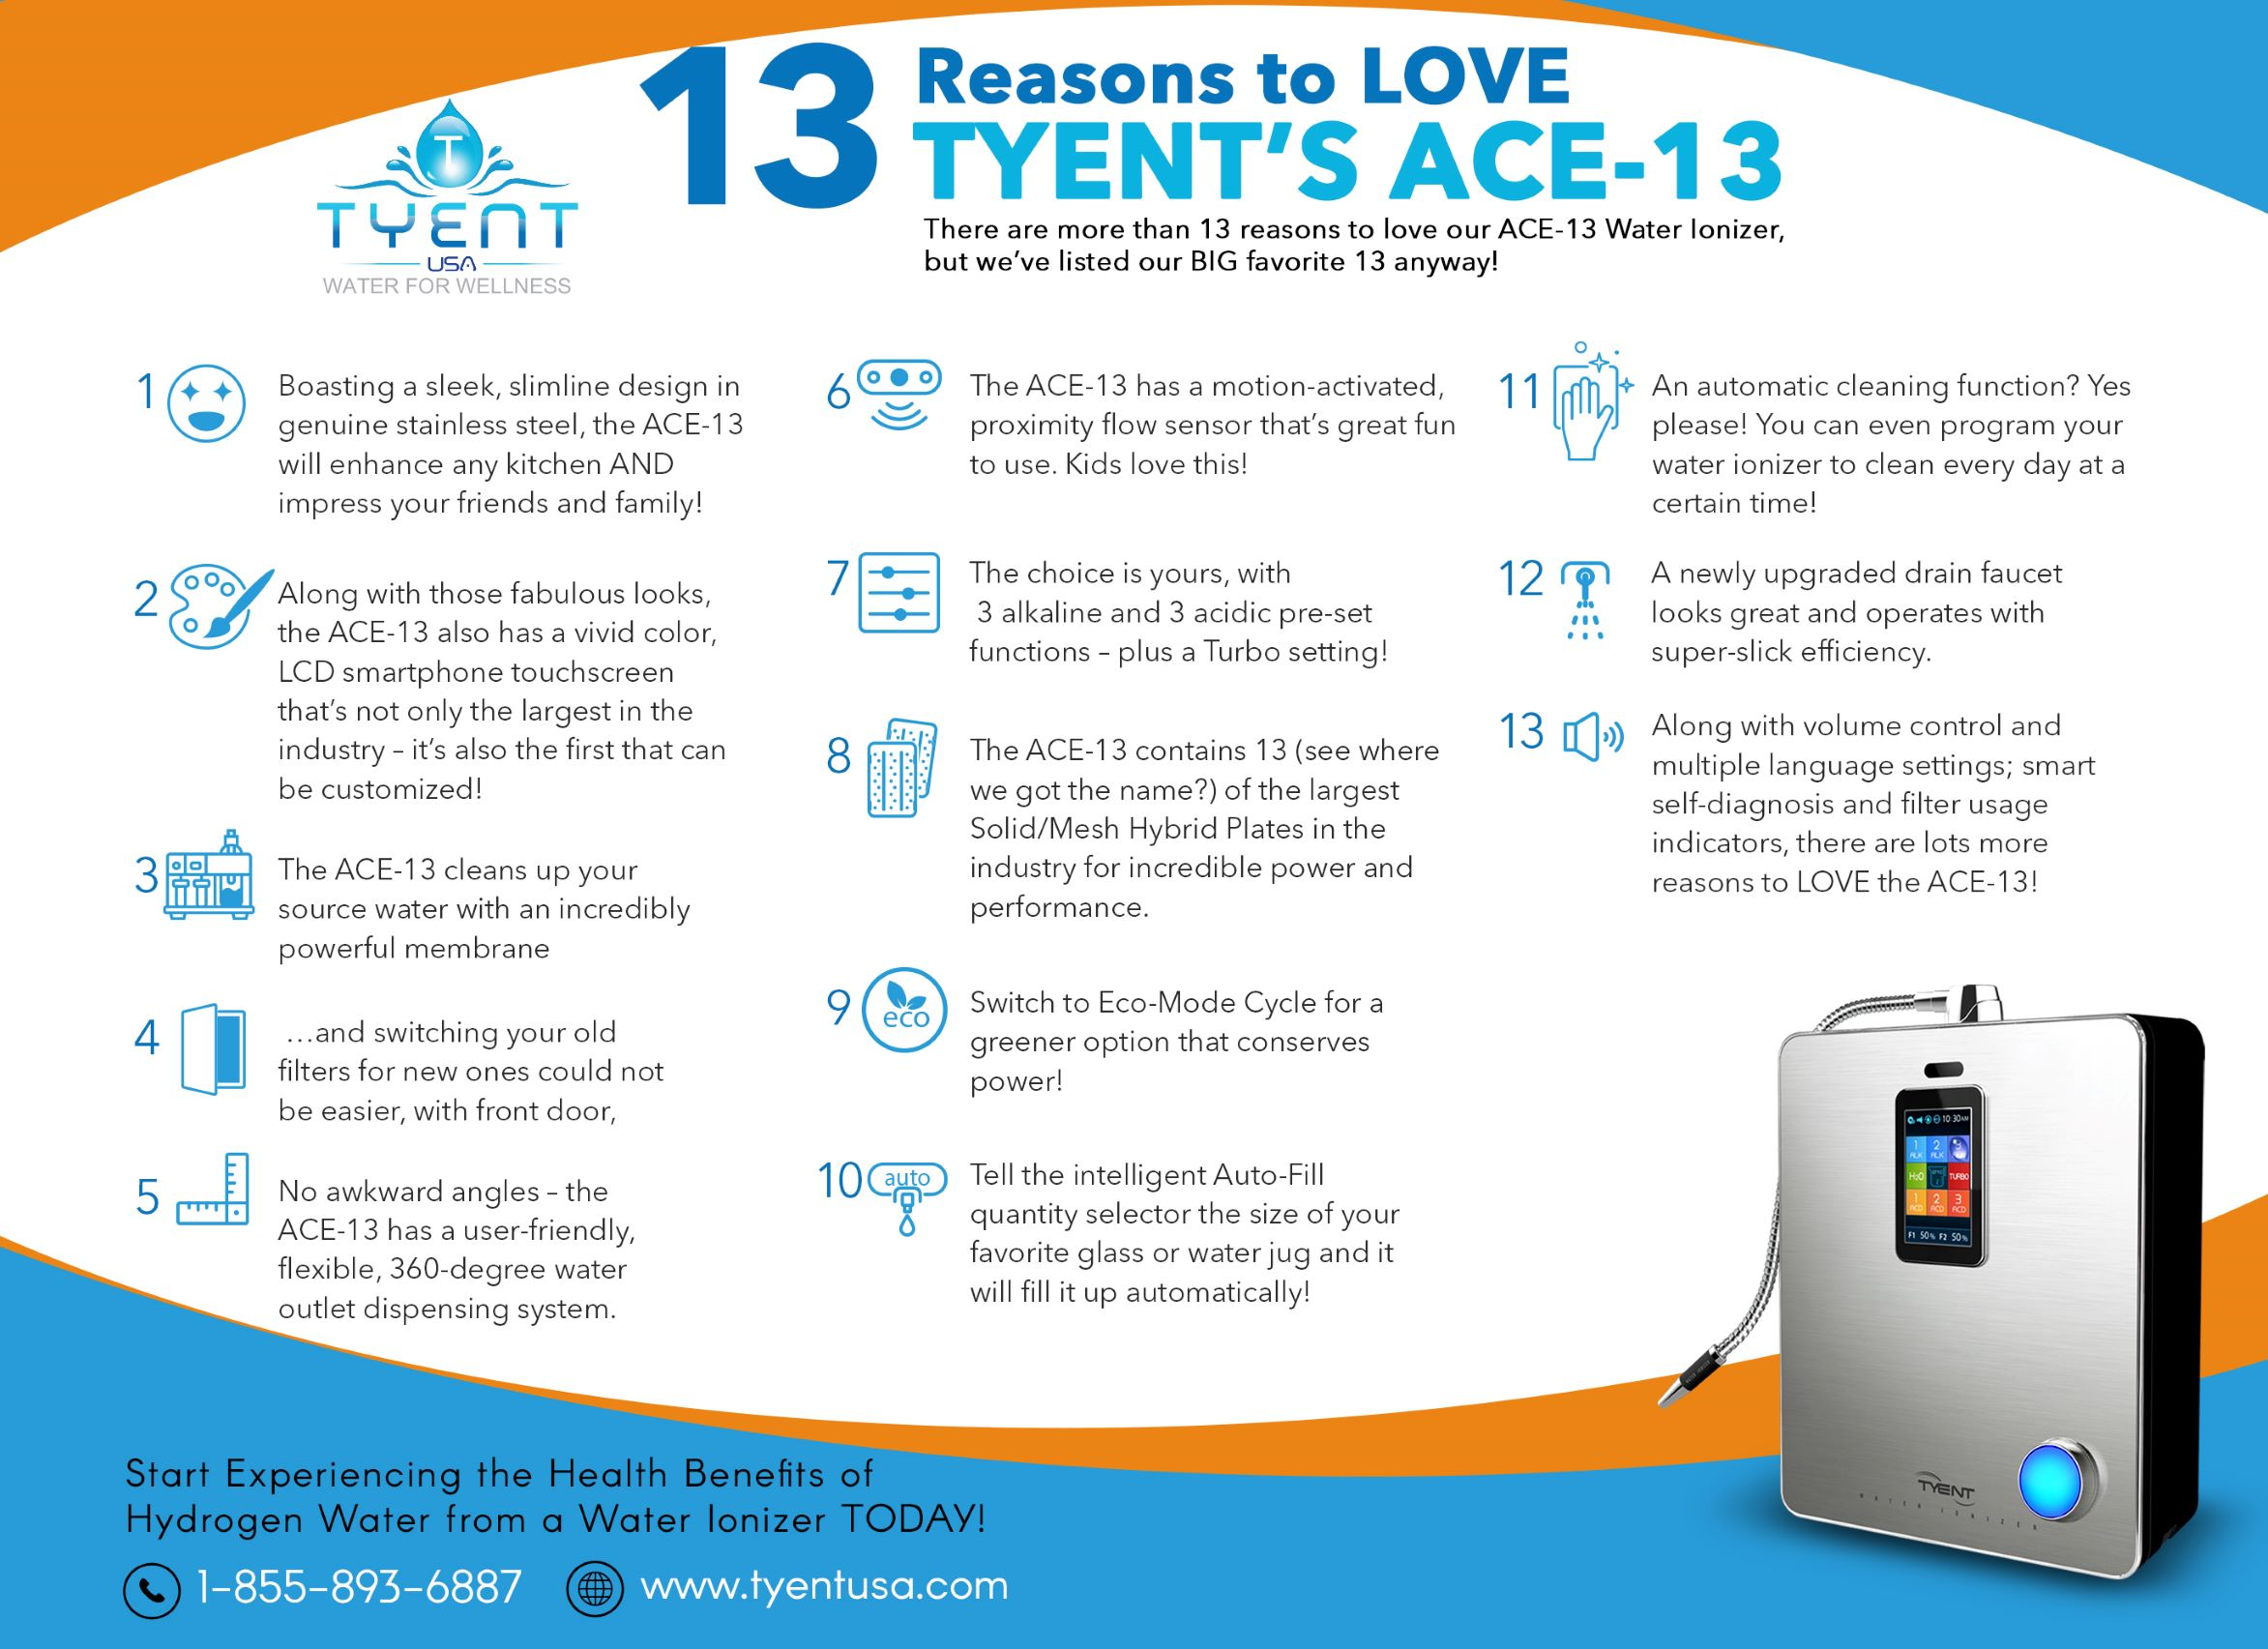 13 Reasons to Love Tyent's ACE-13 Infographic